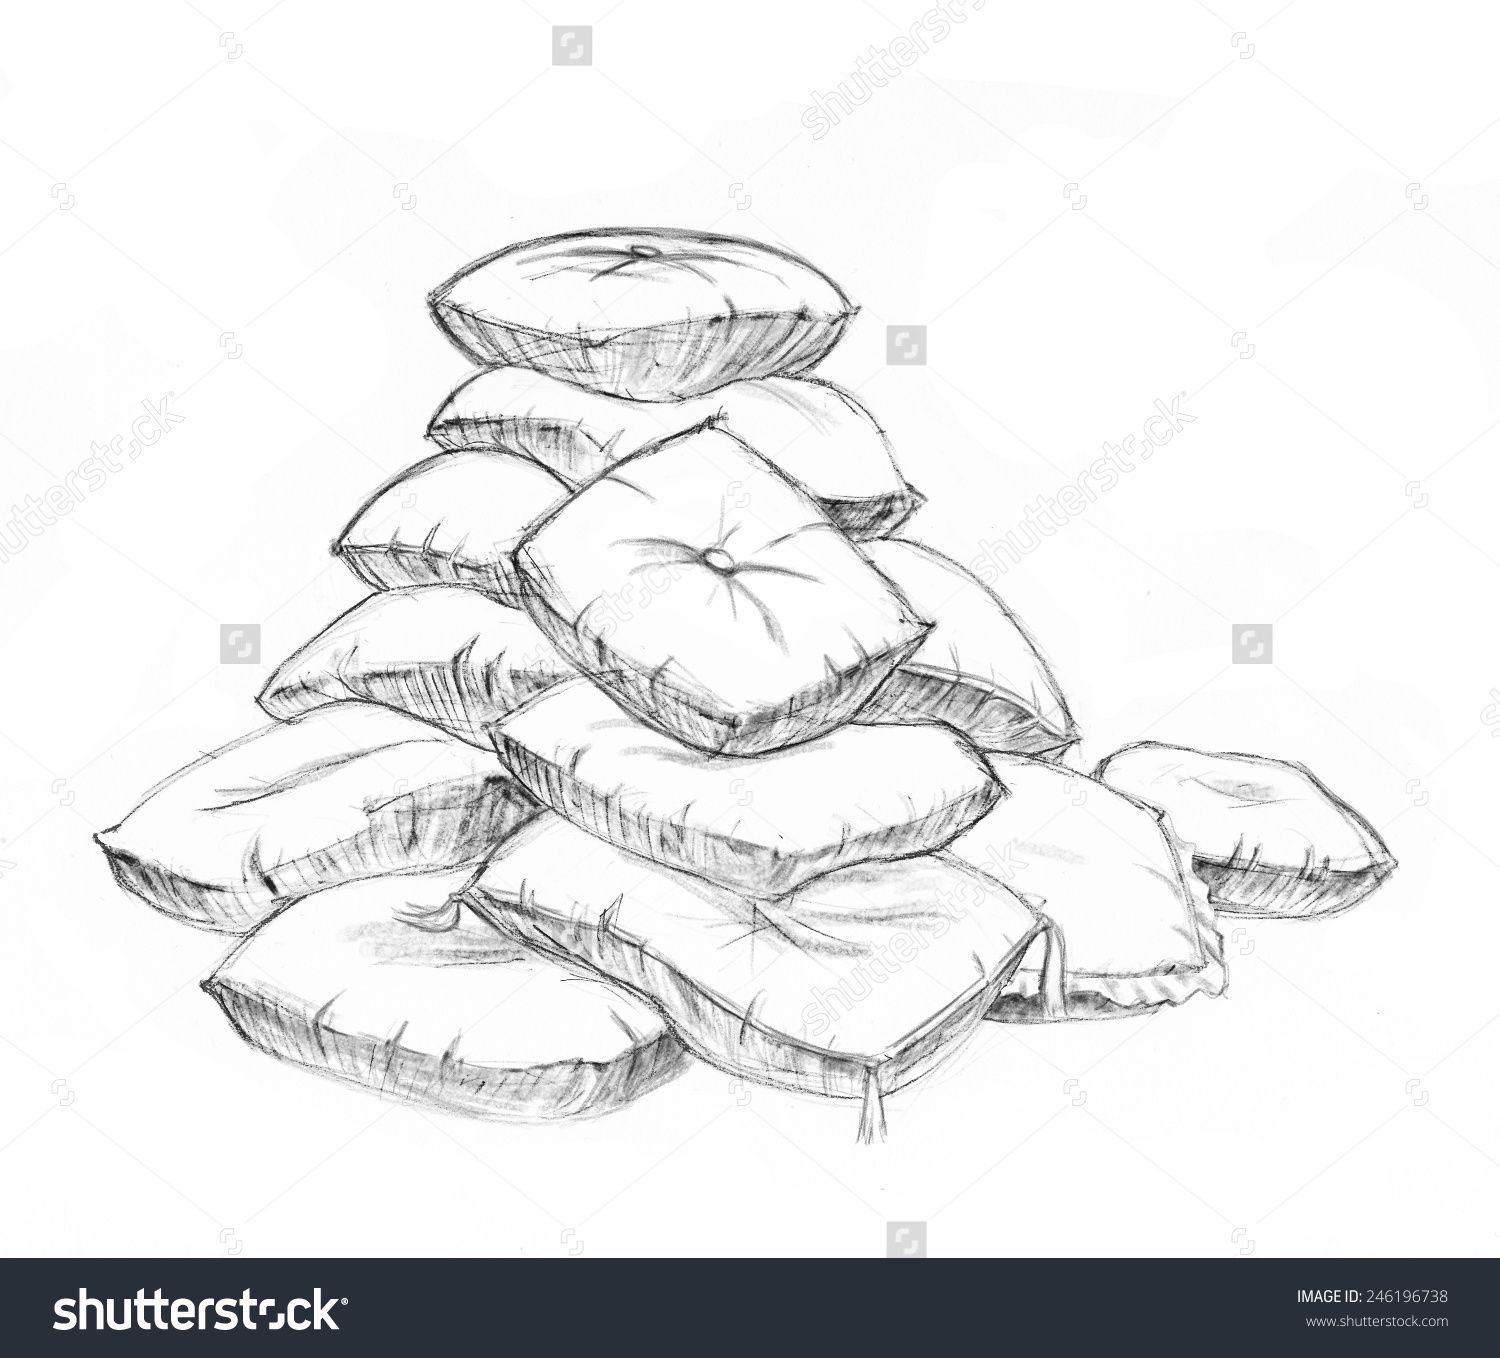 result for pile of pillows drawing | Dessin